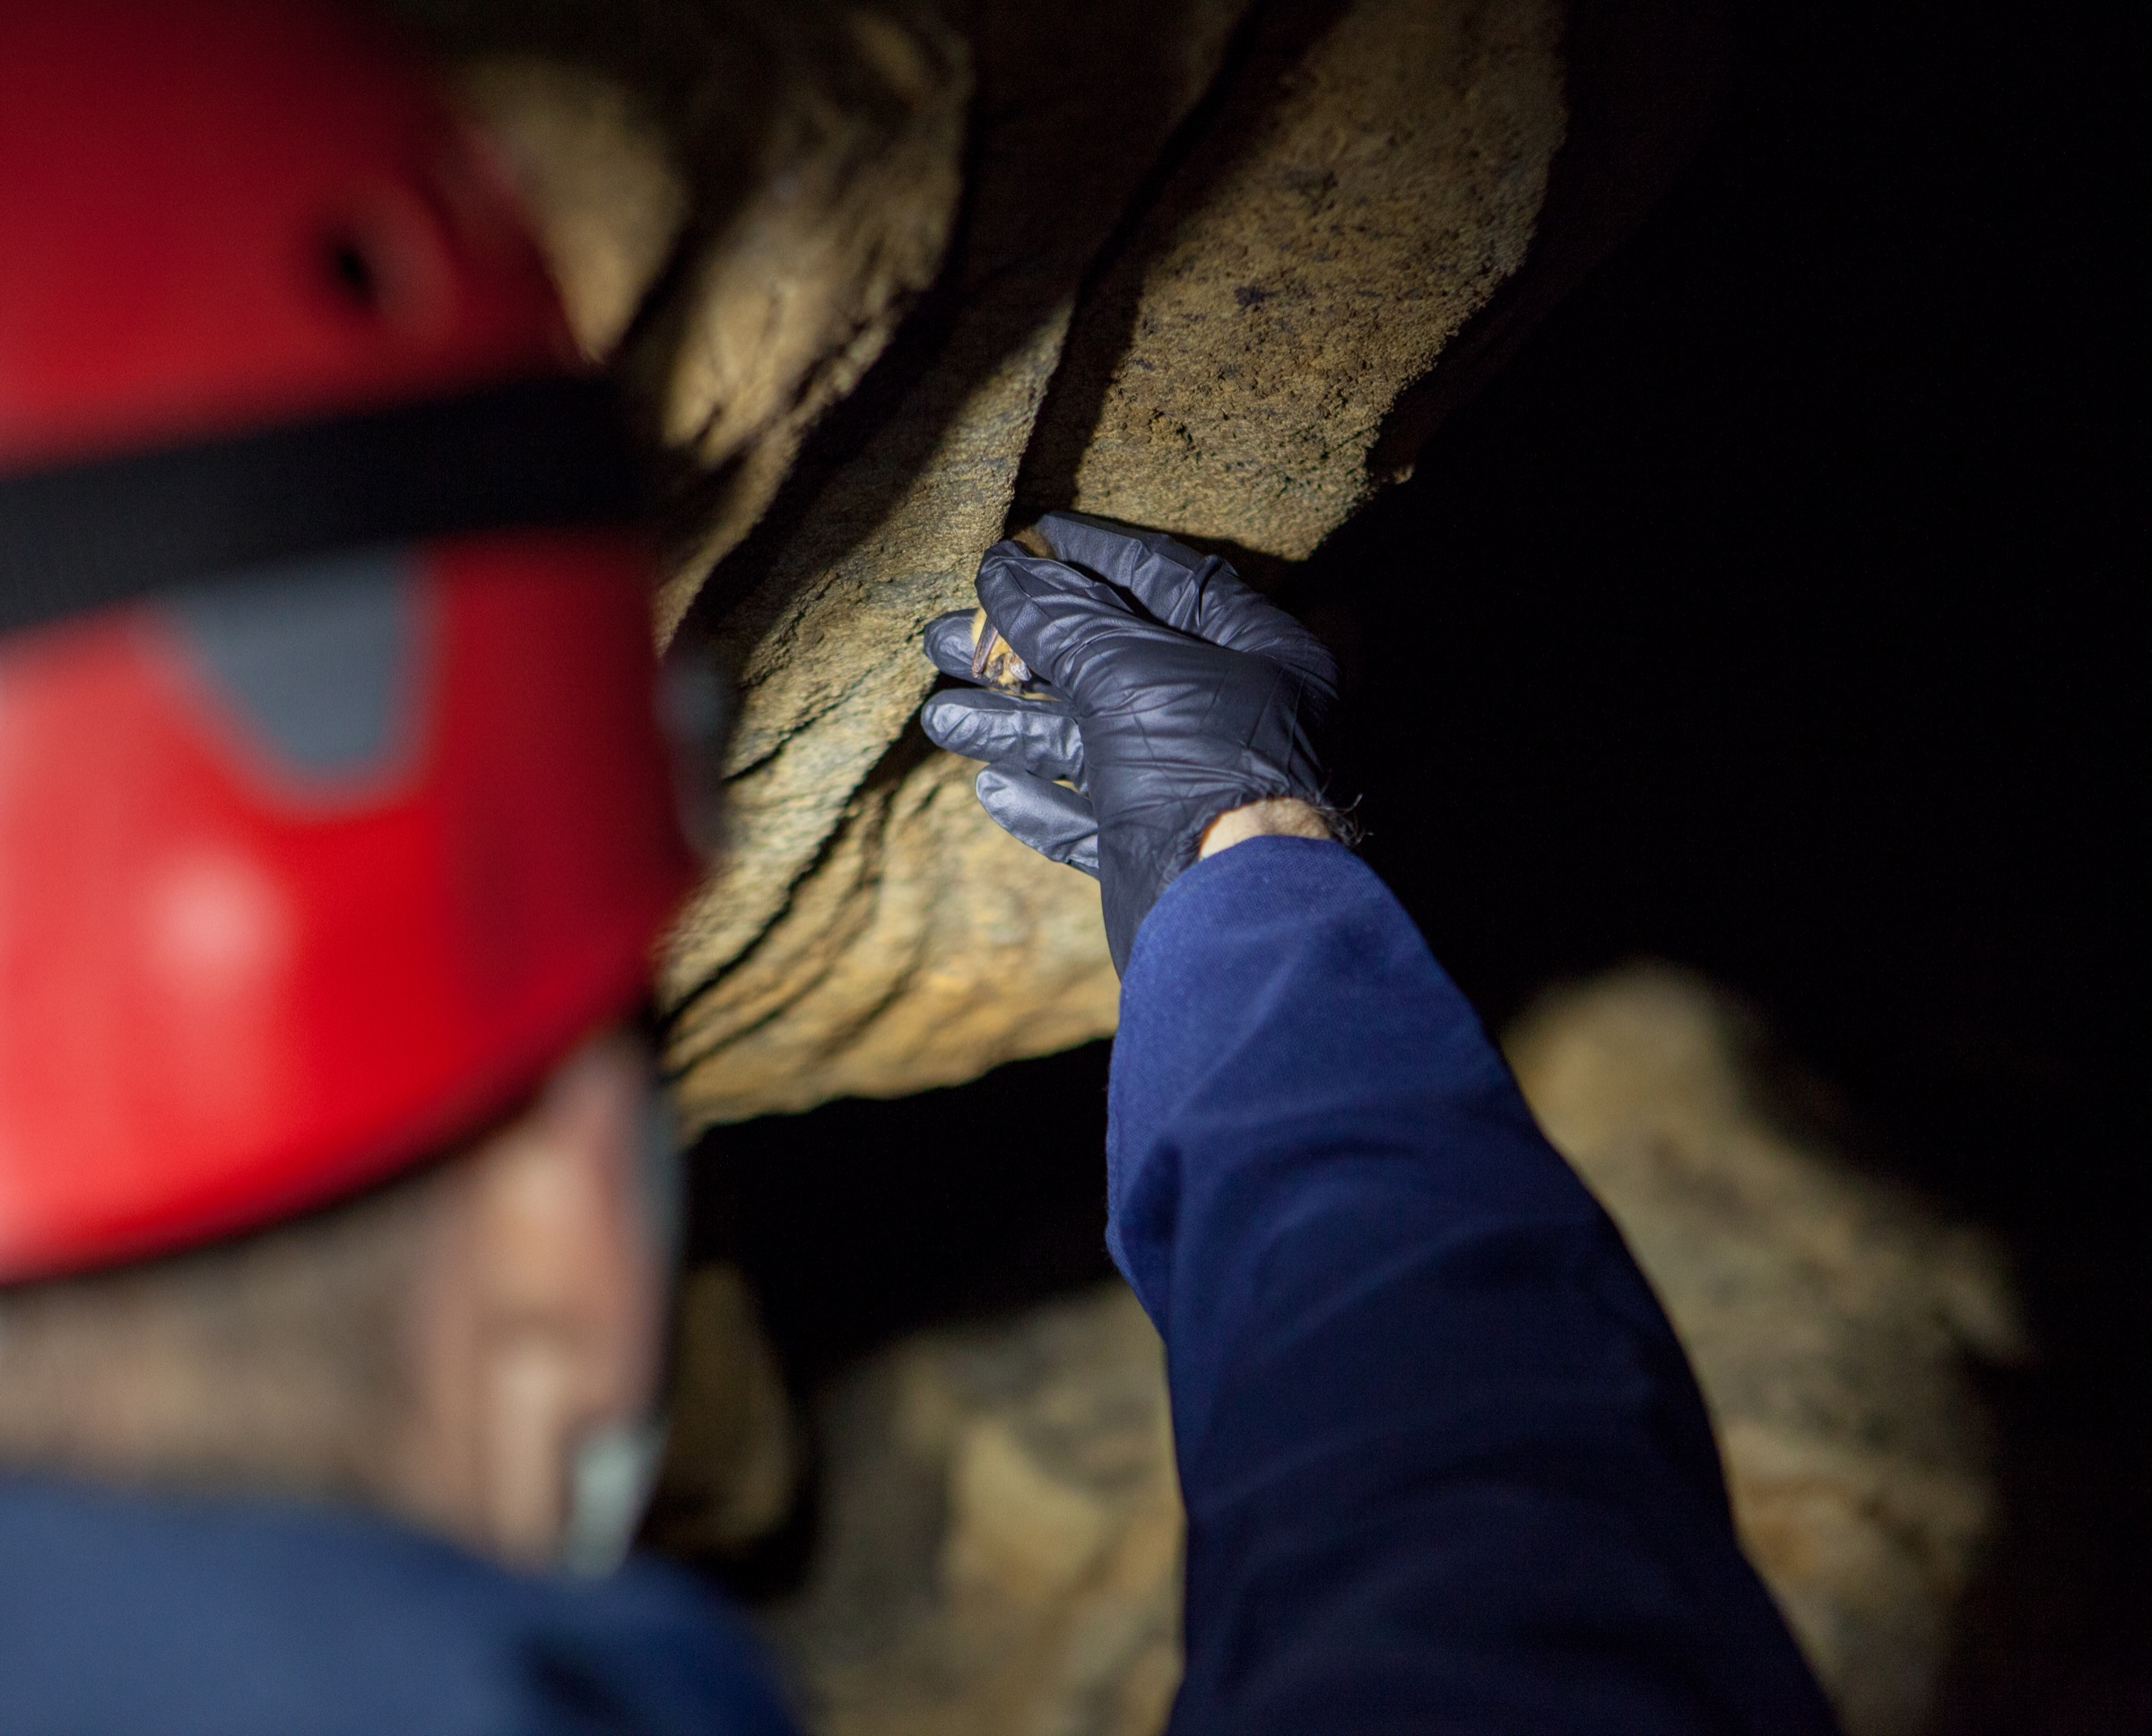 Richard Stark, a biologist with the U.S. Fish and Wildlife Service, collects a dead bat from the walls of a cave in eastern Oklahoma. It's the first recorded white-nose syndrome fatality in this location. Photograph by Geoffrey Giller